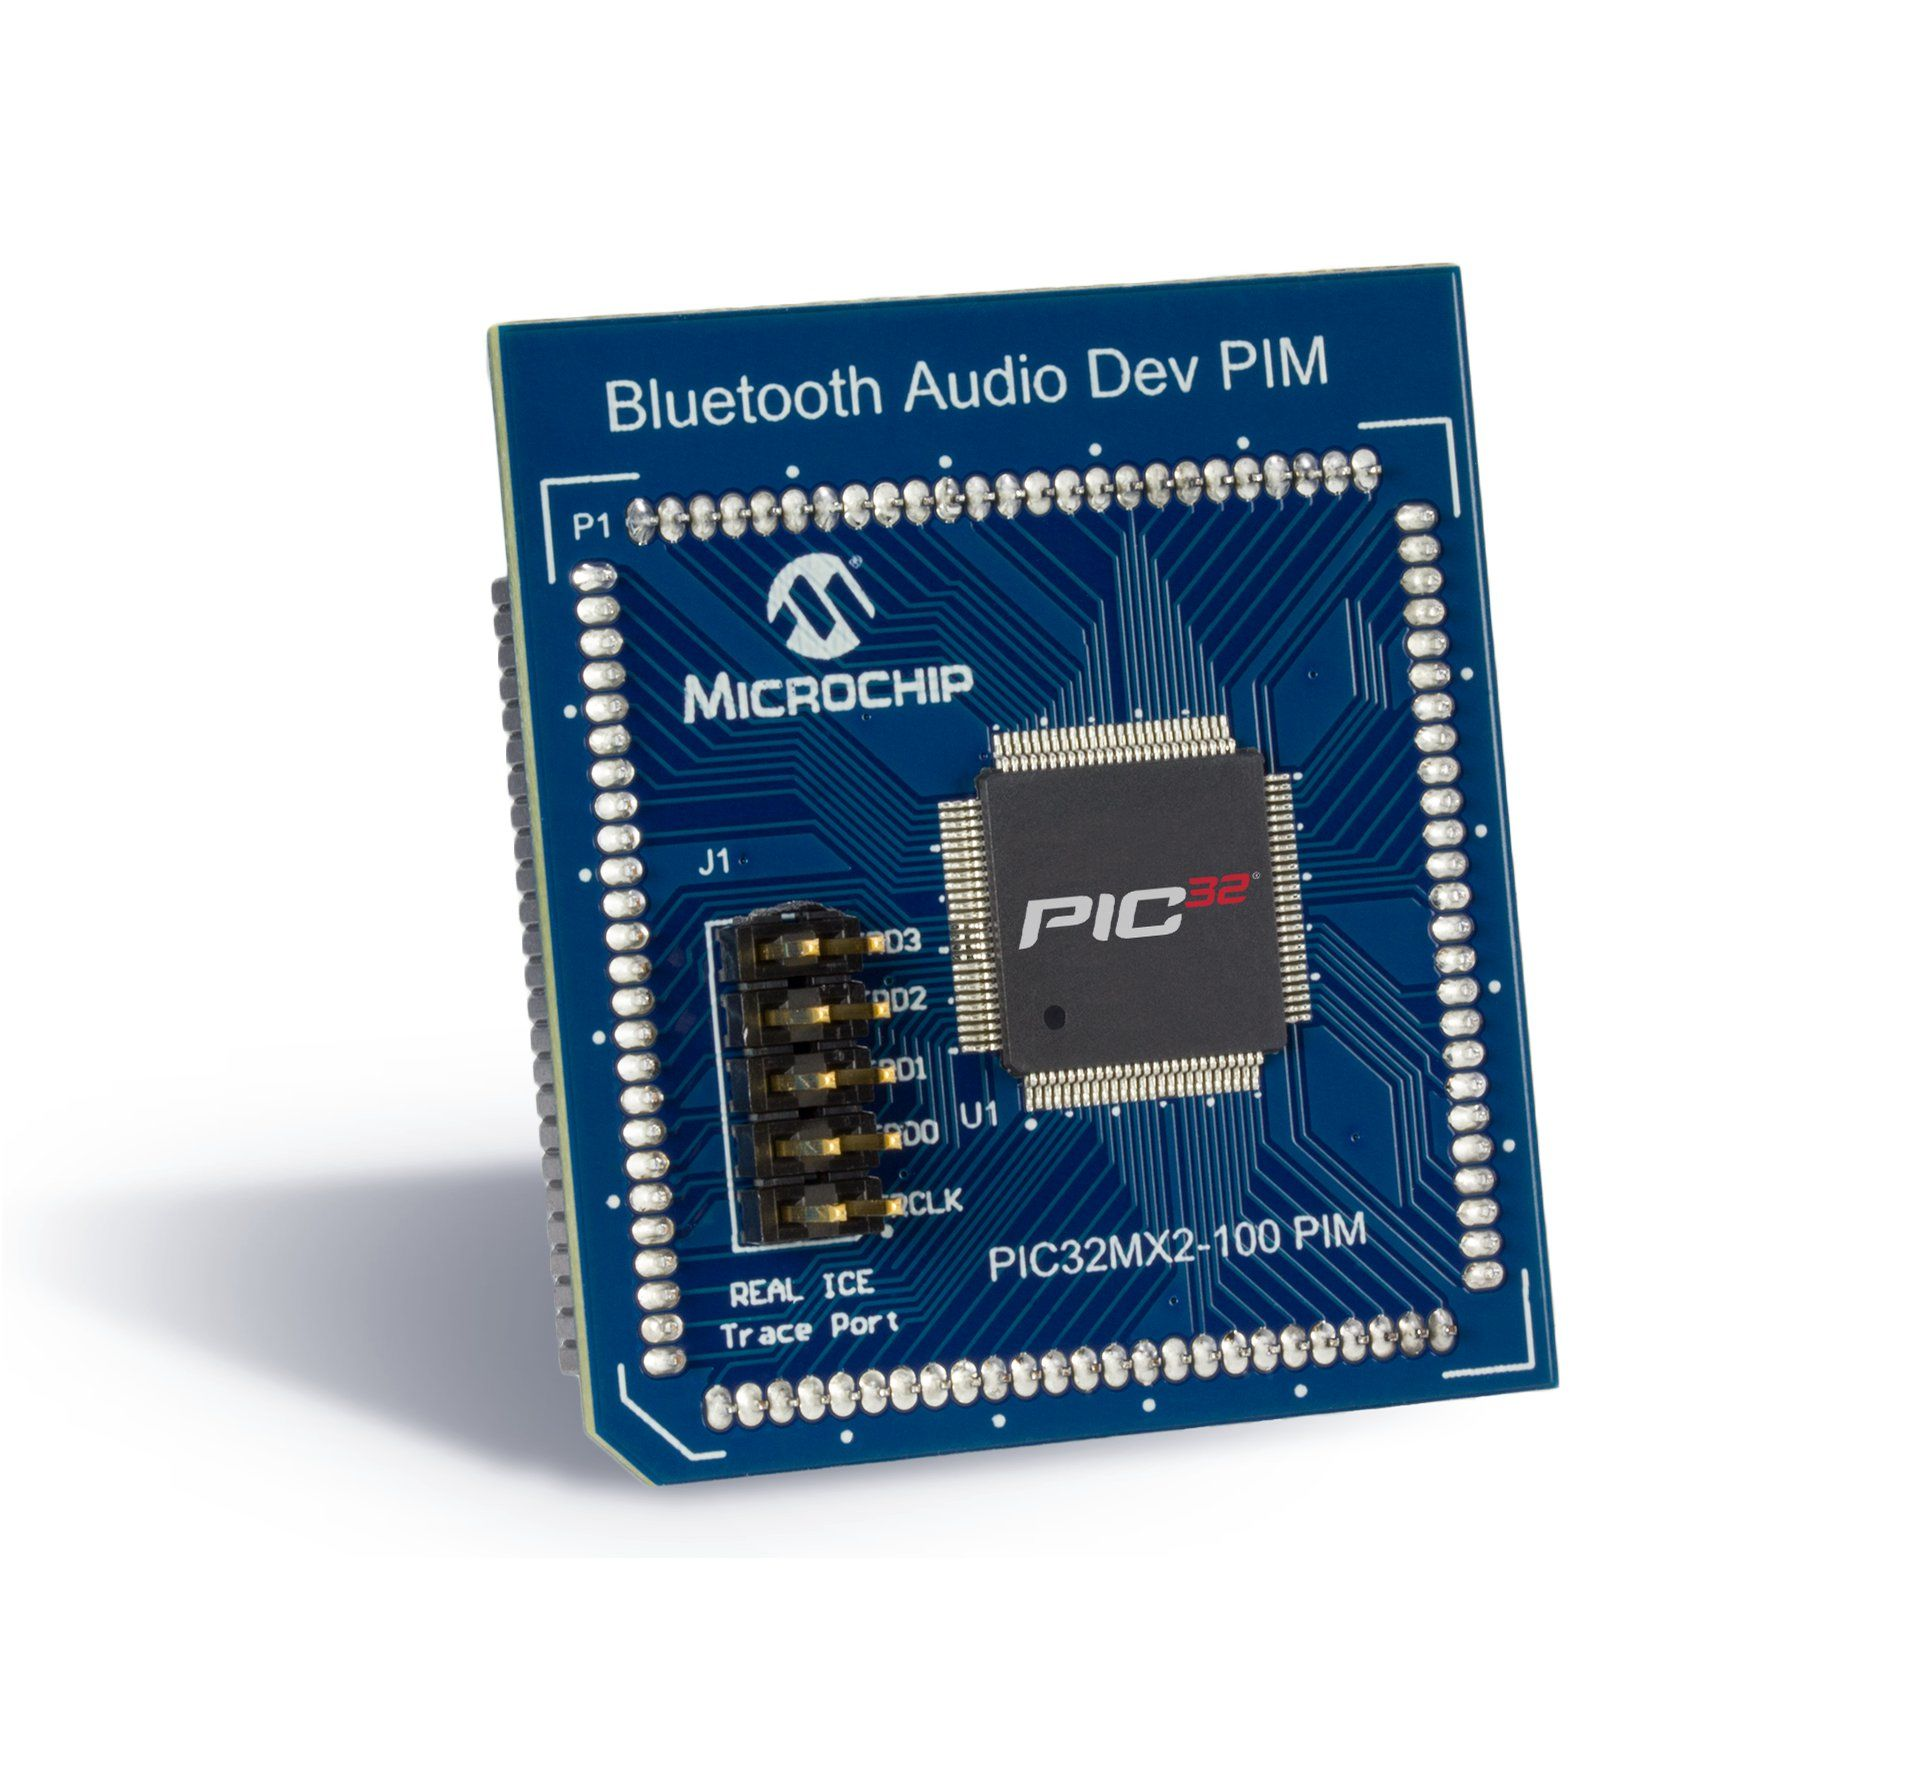 Architecture 32 Bit Pic Microcontrollers Microchip Technology Usb Player Circuit Diagram Also Programmer On Avr Pic32mx274f256 Pim For Bluetooth Audio Development Kit